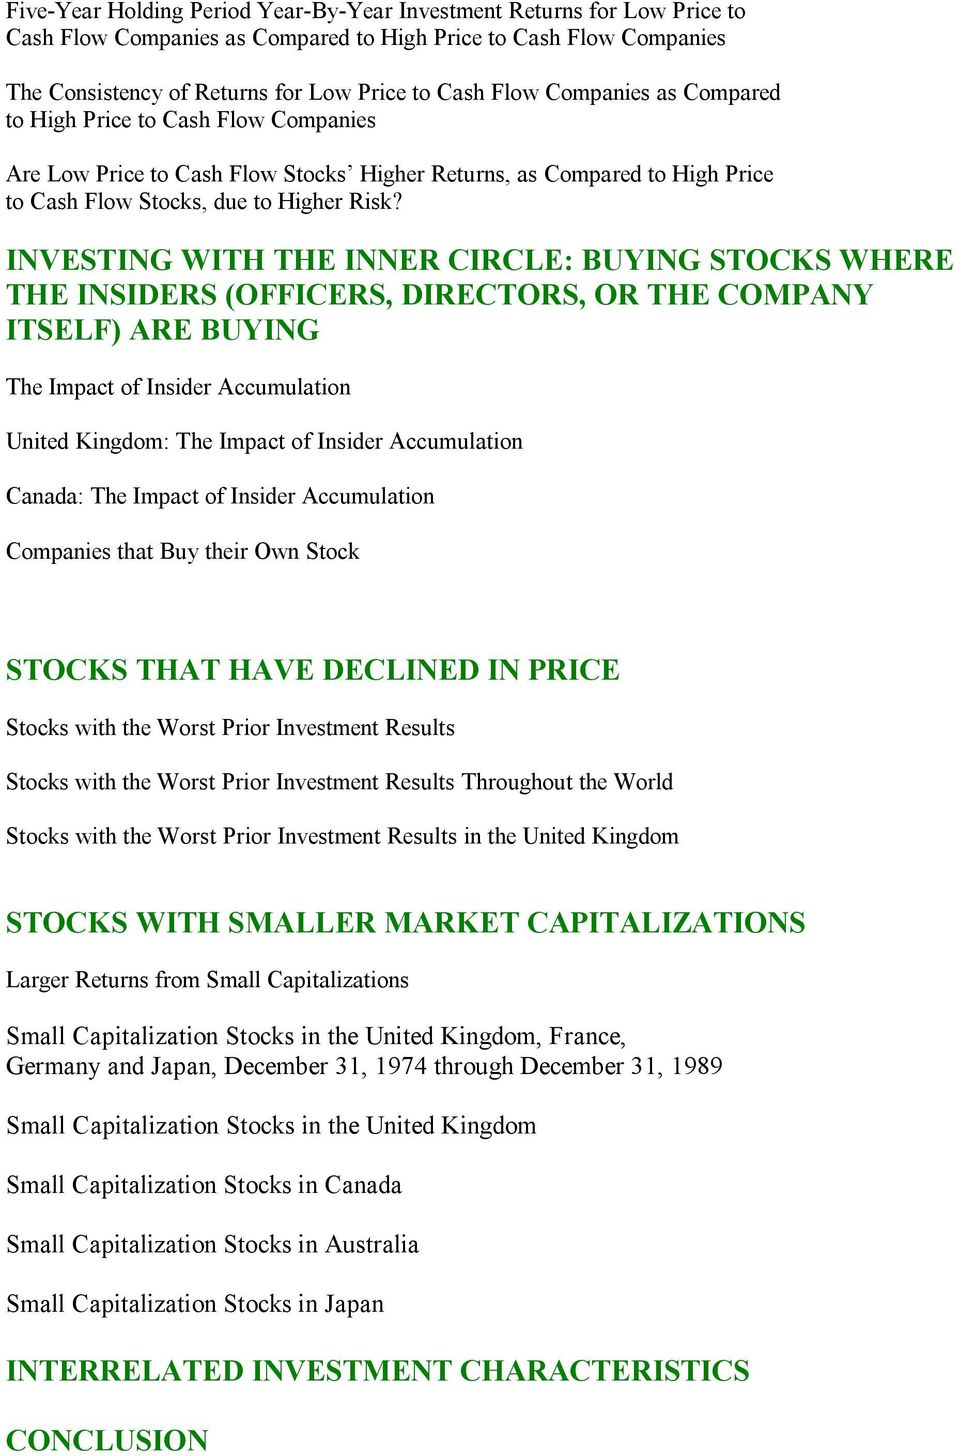 INVESTING WITH THE INNER CIRCLE: BUYING STOCKS WHERE THE INSIDERS (OFFICERS, DIRECTORS, OR THE COMPANY ITSELF) ARE BUYING The Impact of Insider Accumulation United Kingdom: The Impact of Insider